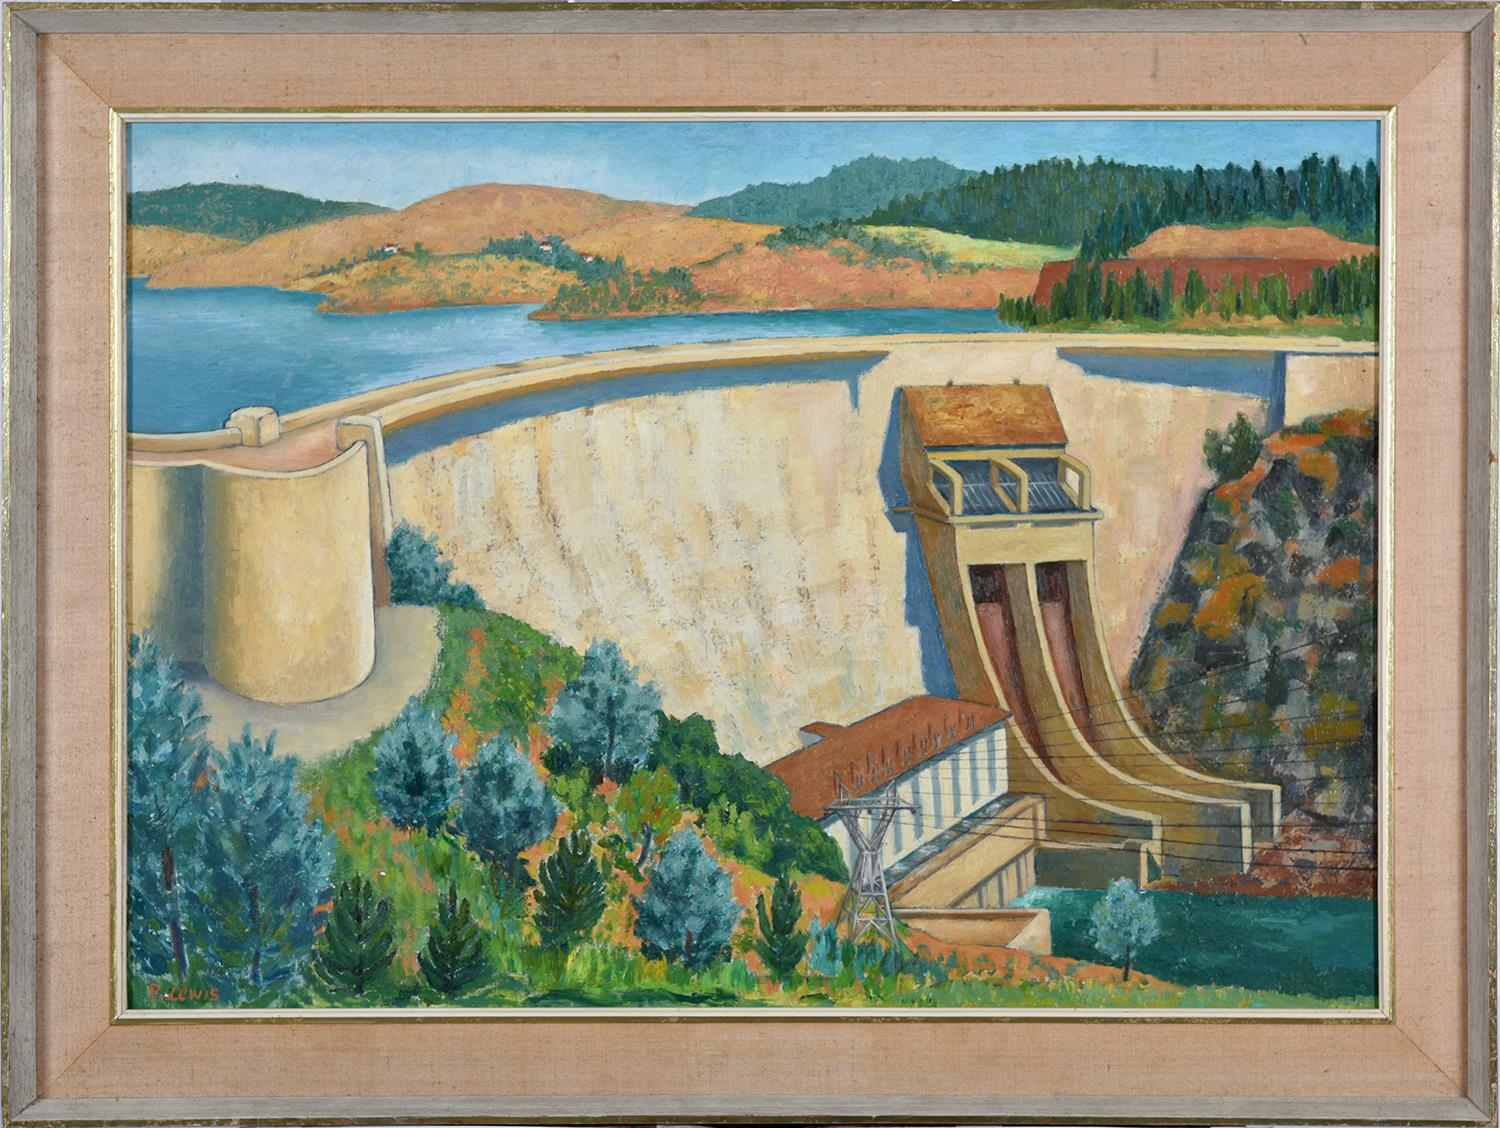 P Lewis, 1960 ' Castelo do Bode Dam, Portugal,signed and dated, oil on hardboard, 62.5 x 90cm - Image 2 of 3